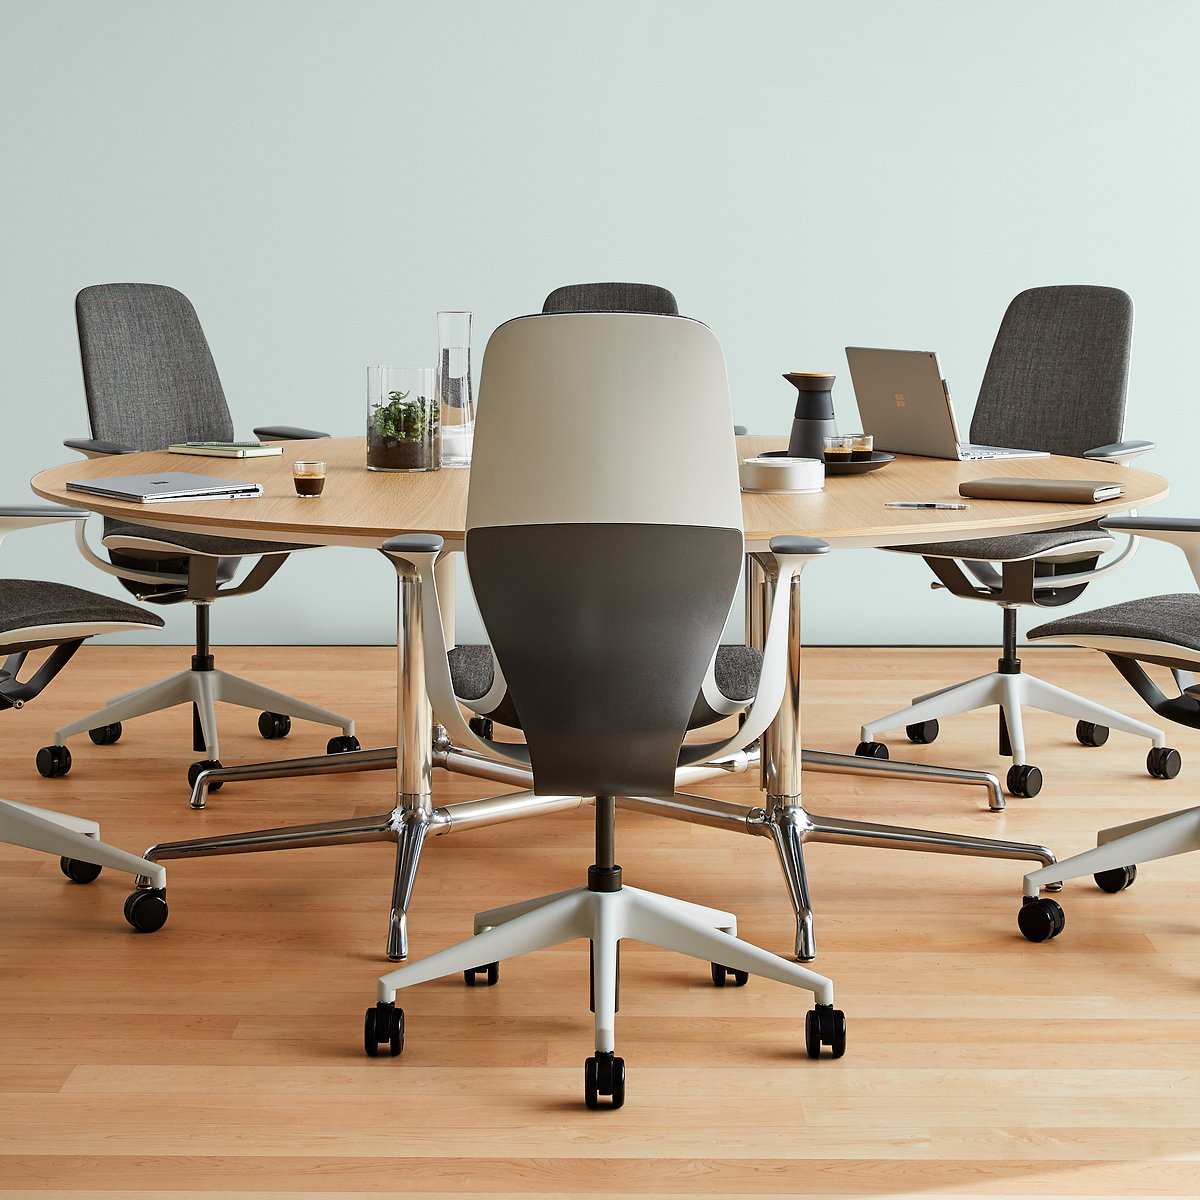 Steelcase Launches SILQ